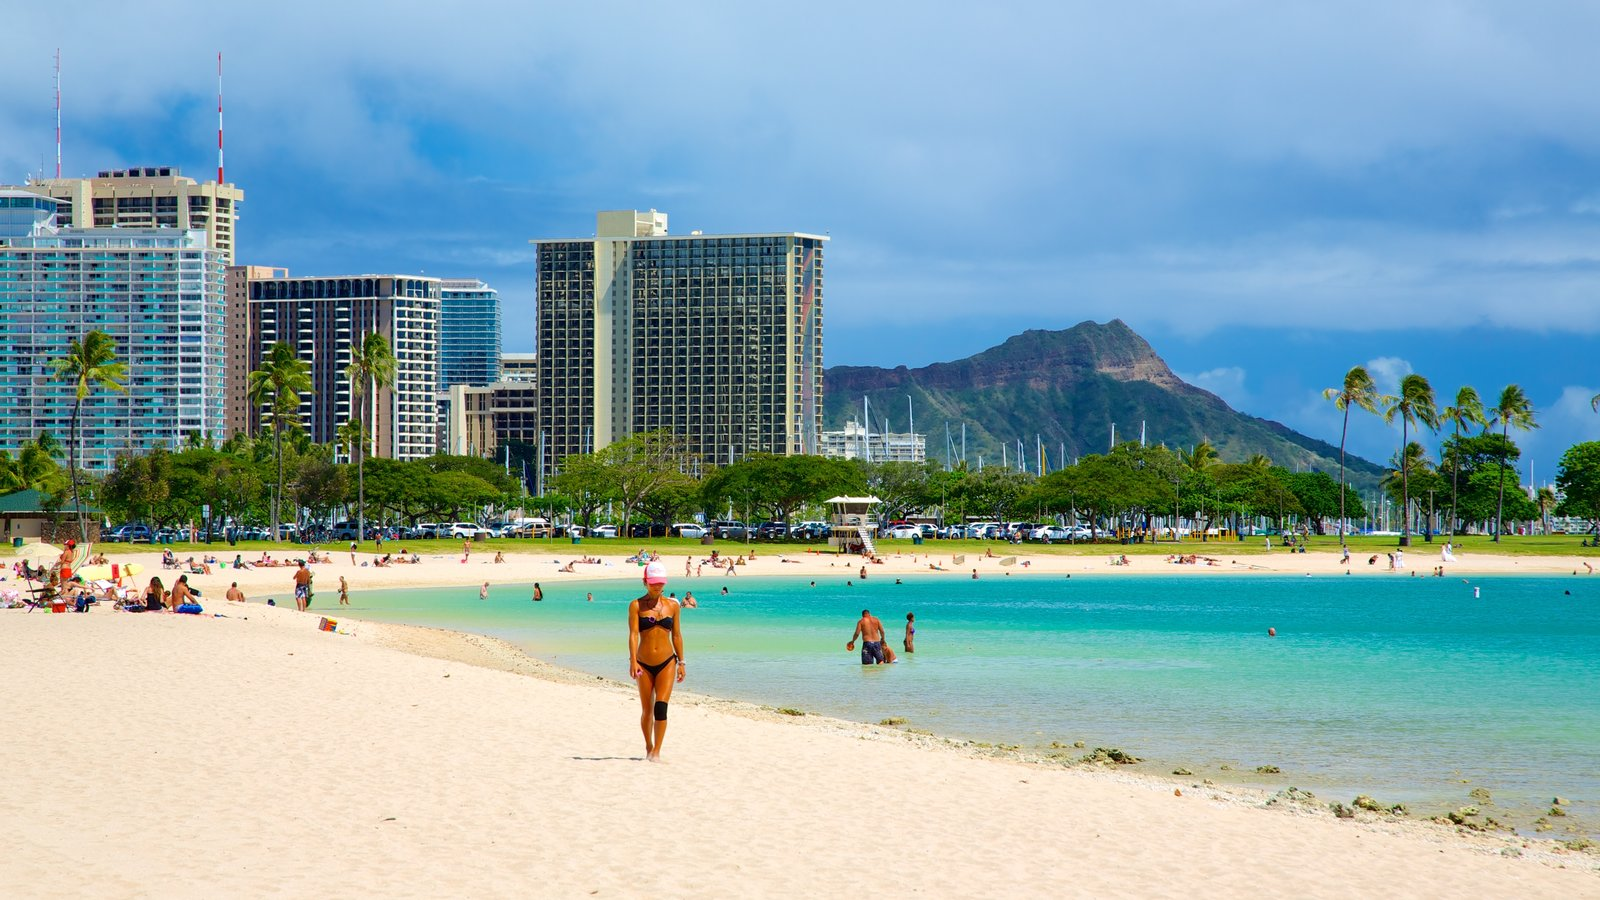 People Pictures View Images of Honolulu